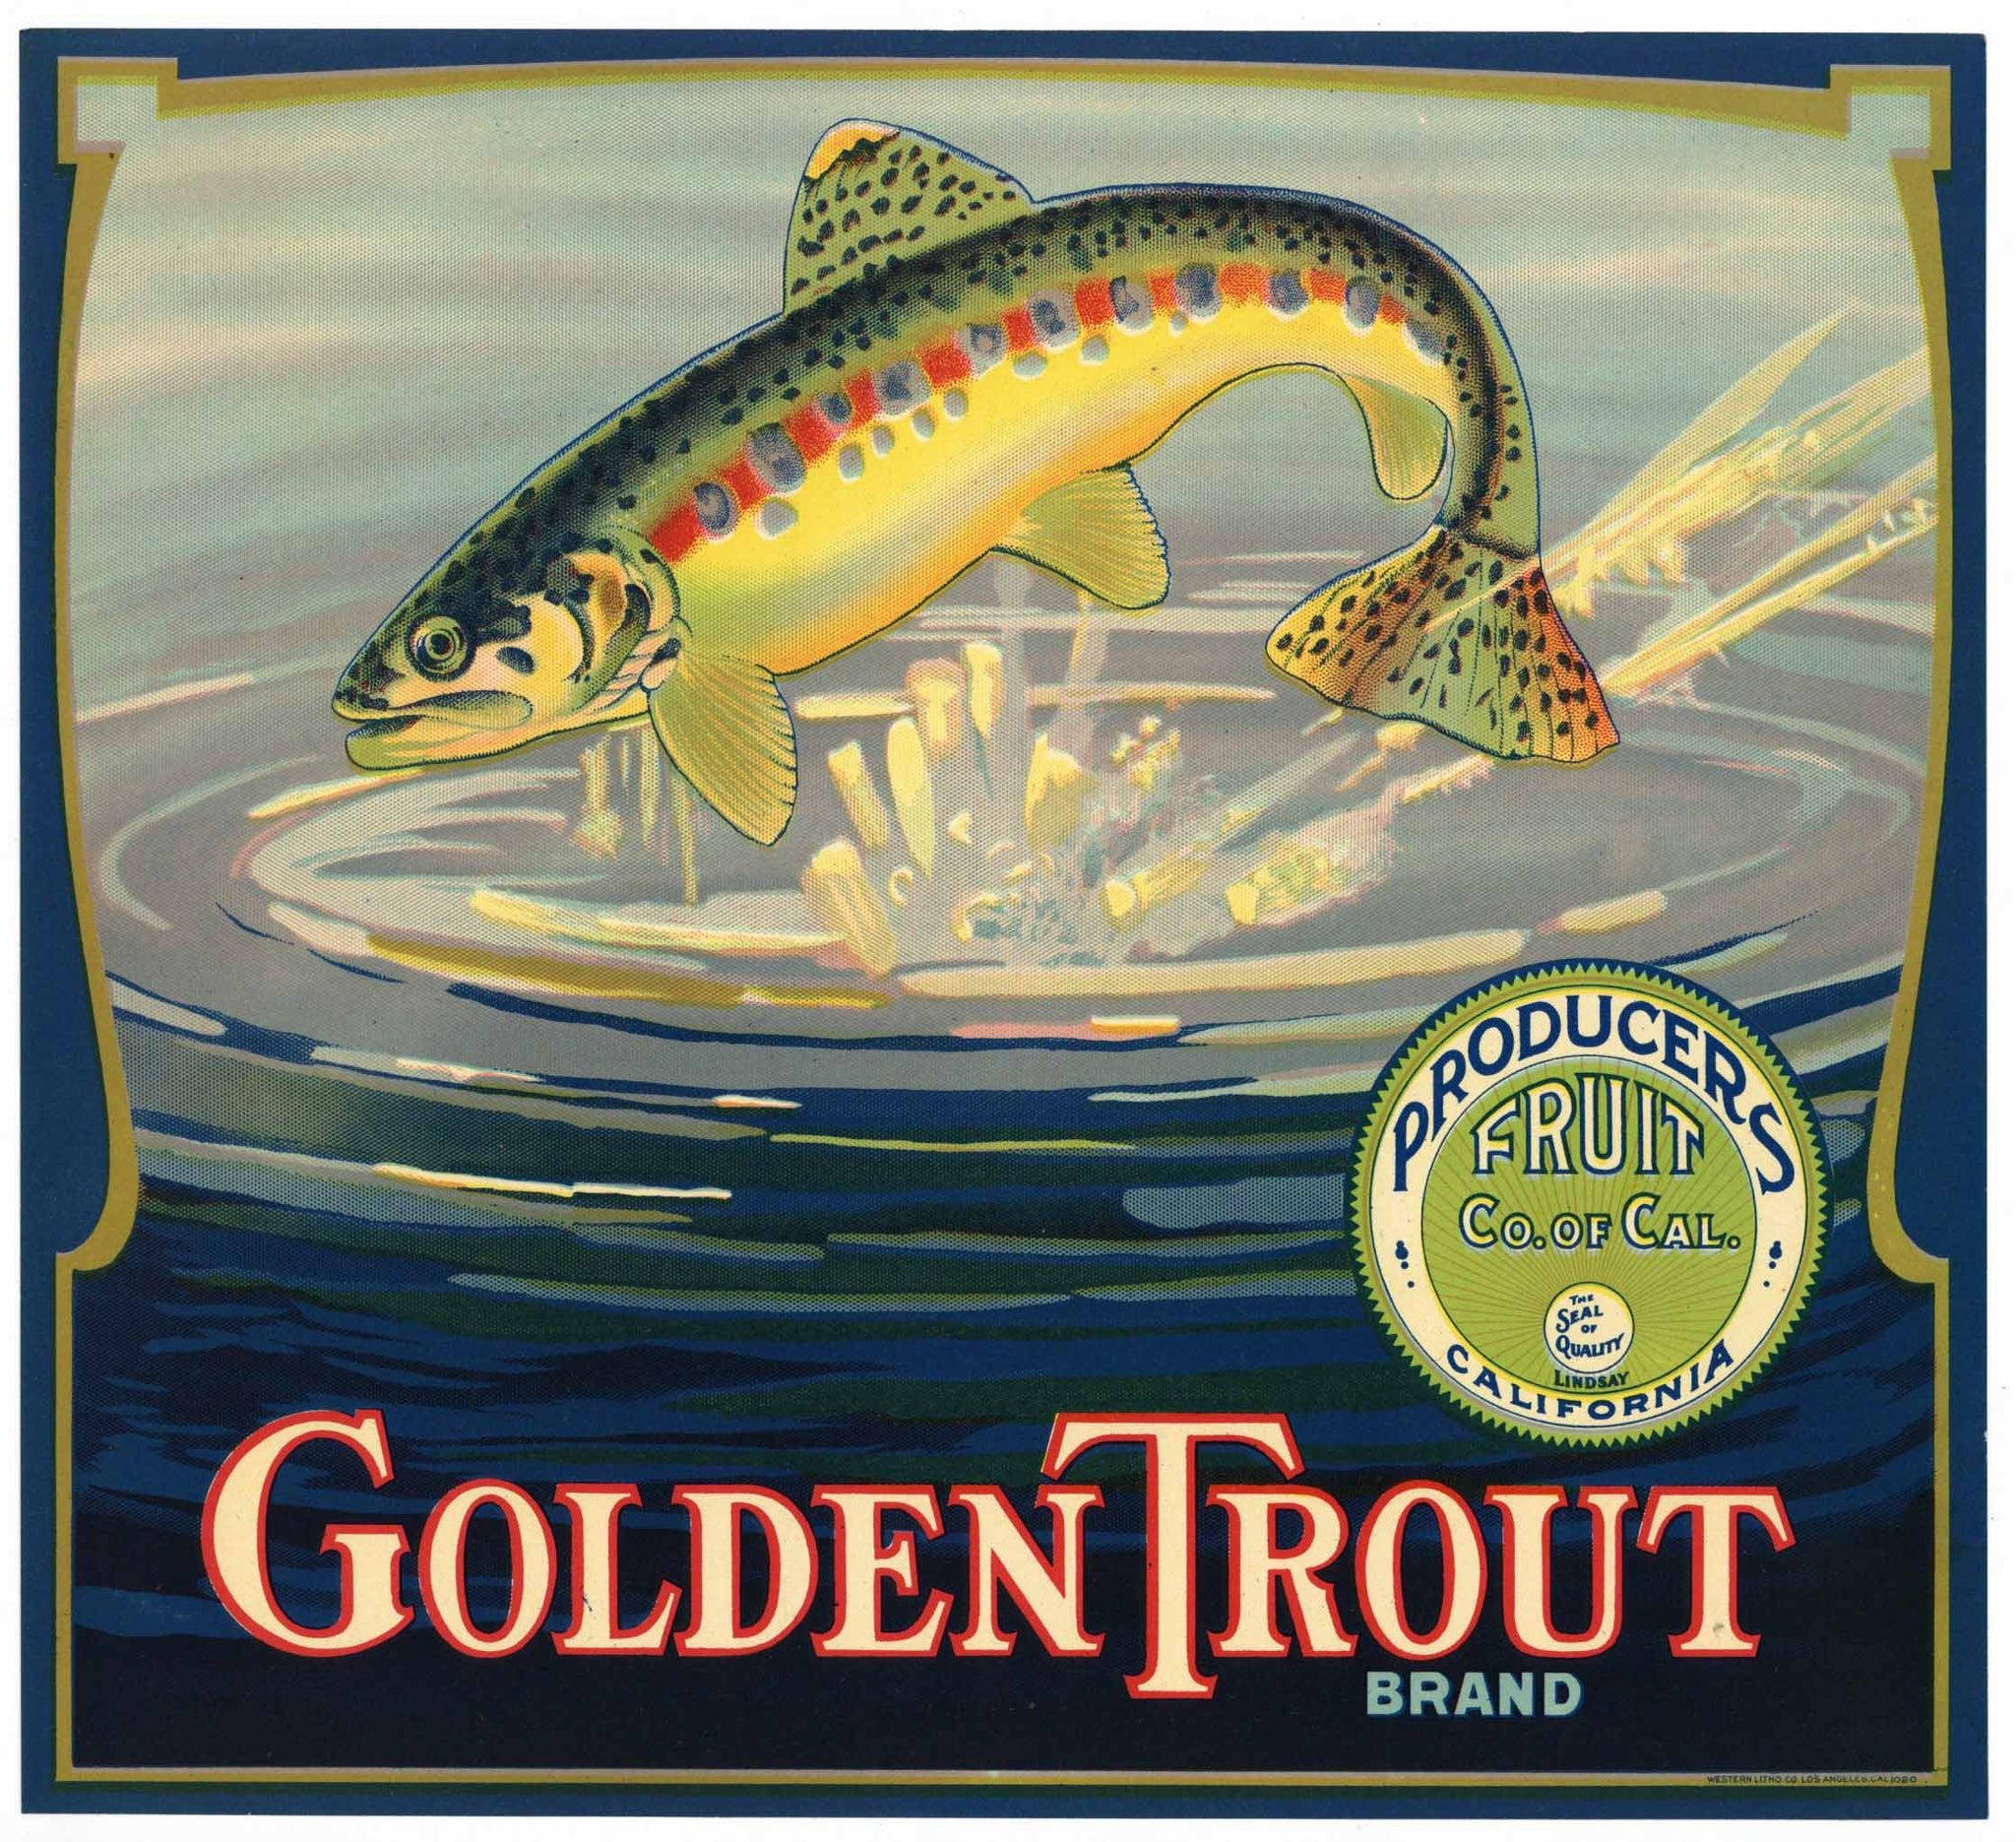 Golden Trout Brand Vintage Tulare County Orange Crate Label, Producers Fruit